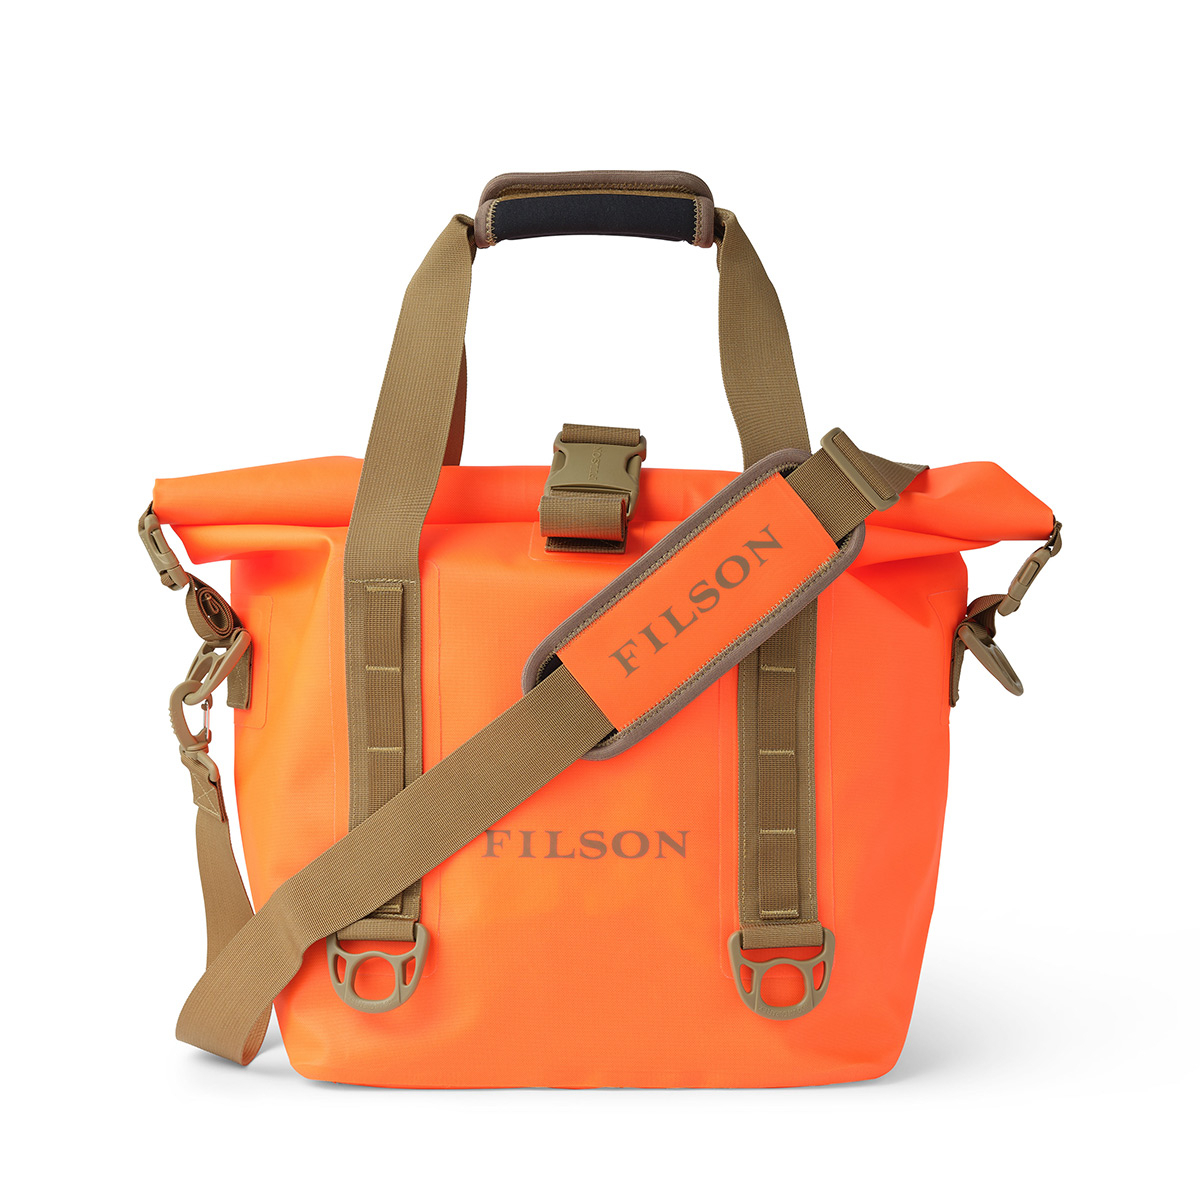 Filson Dry Roll-Top Tote Bag 20175828-Flame